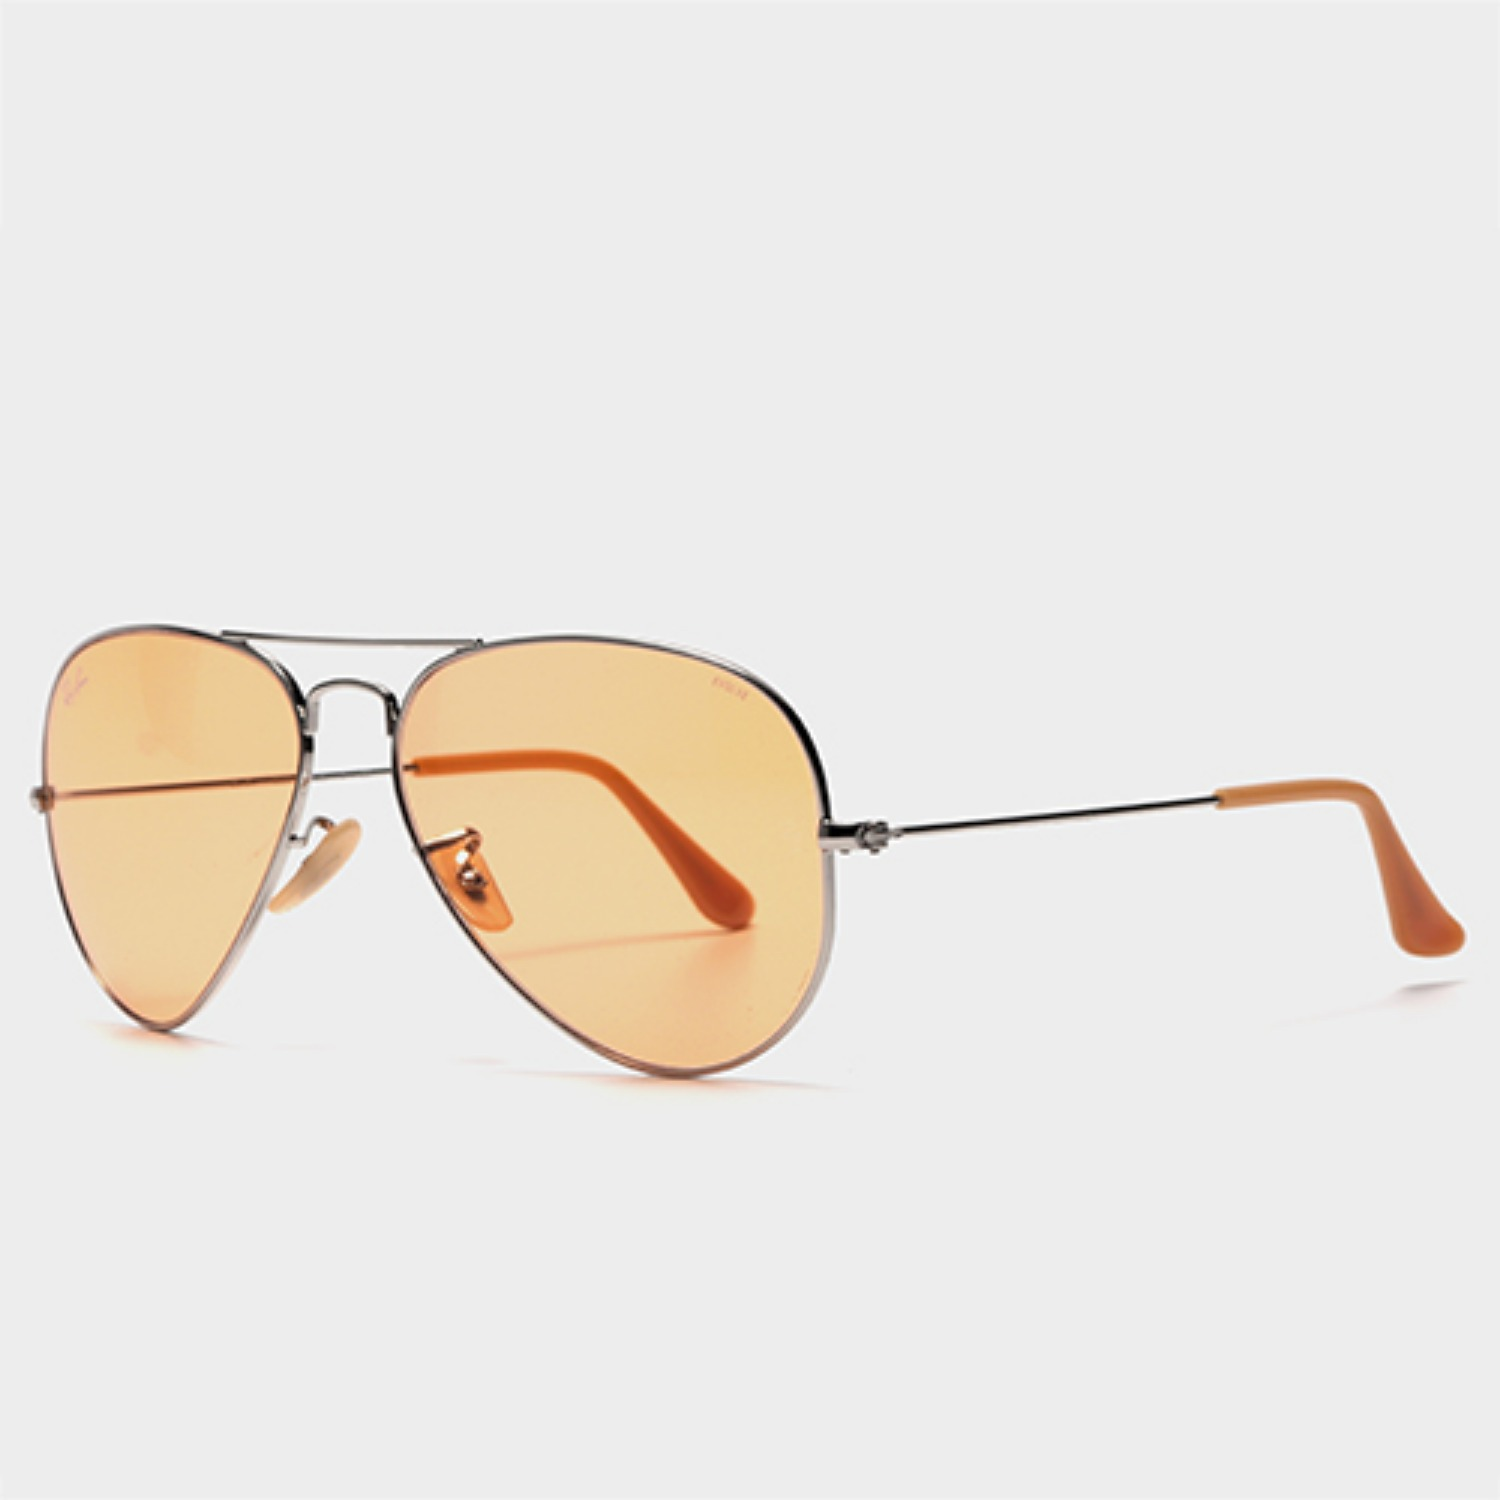 레이벤 RB3025 AVIATOR LARGE METAL 9065 V9 (58) (Orange Tint Lens)